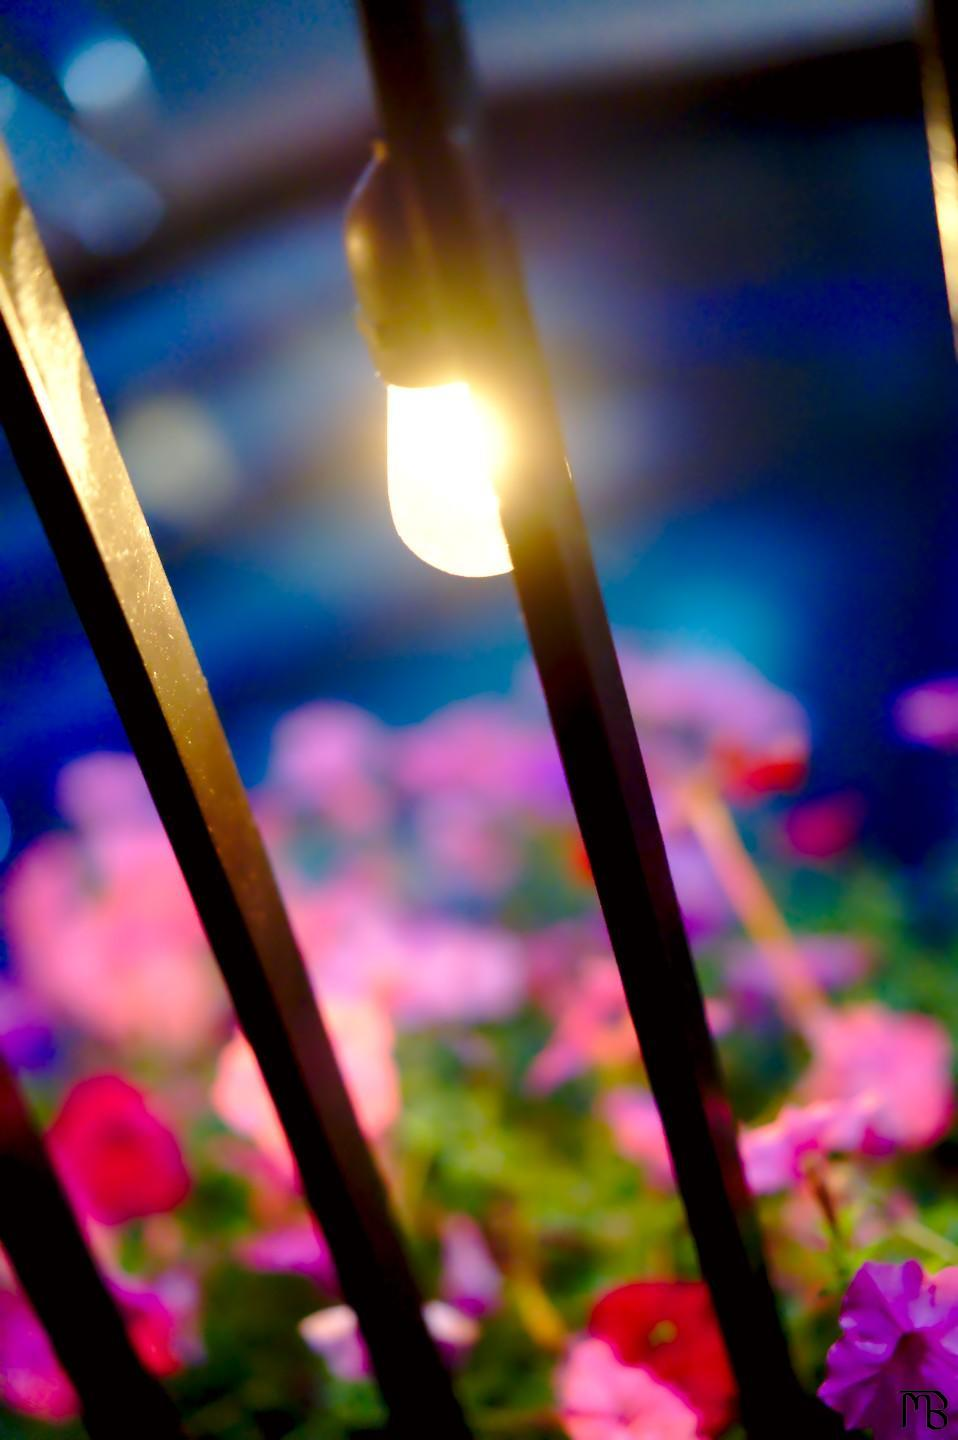 Arty light bulb by pink flowers and pool